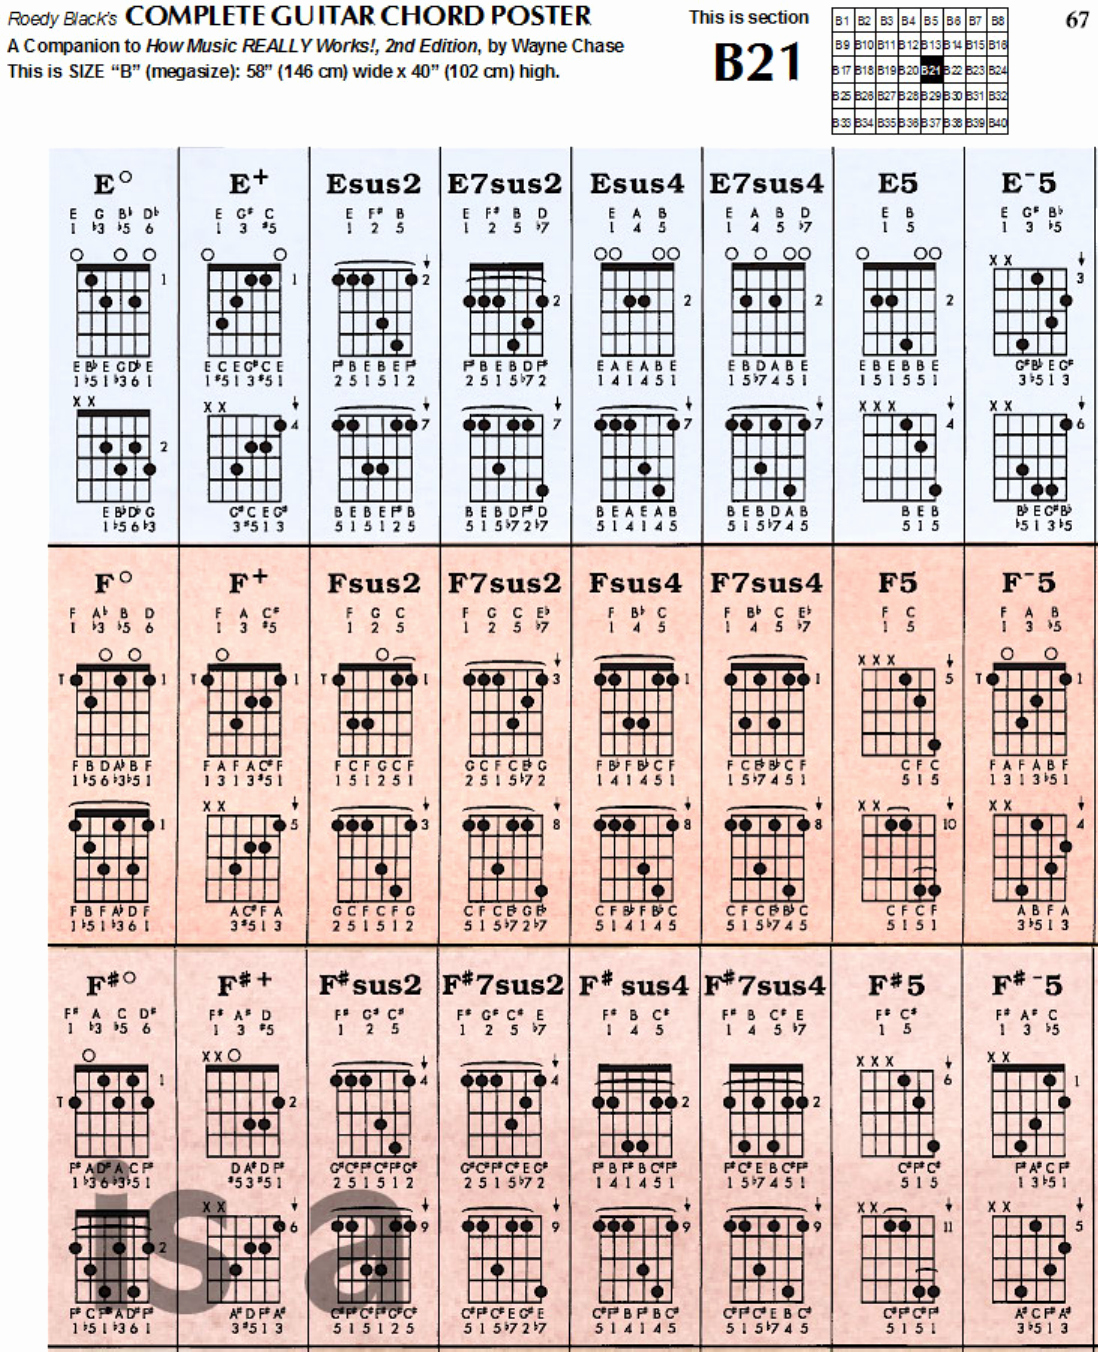 Complete Guitar Chord Chart Inspirational Download Plete Guitar Chord Chart Template for Free